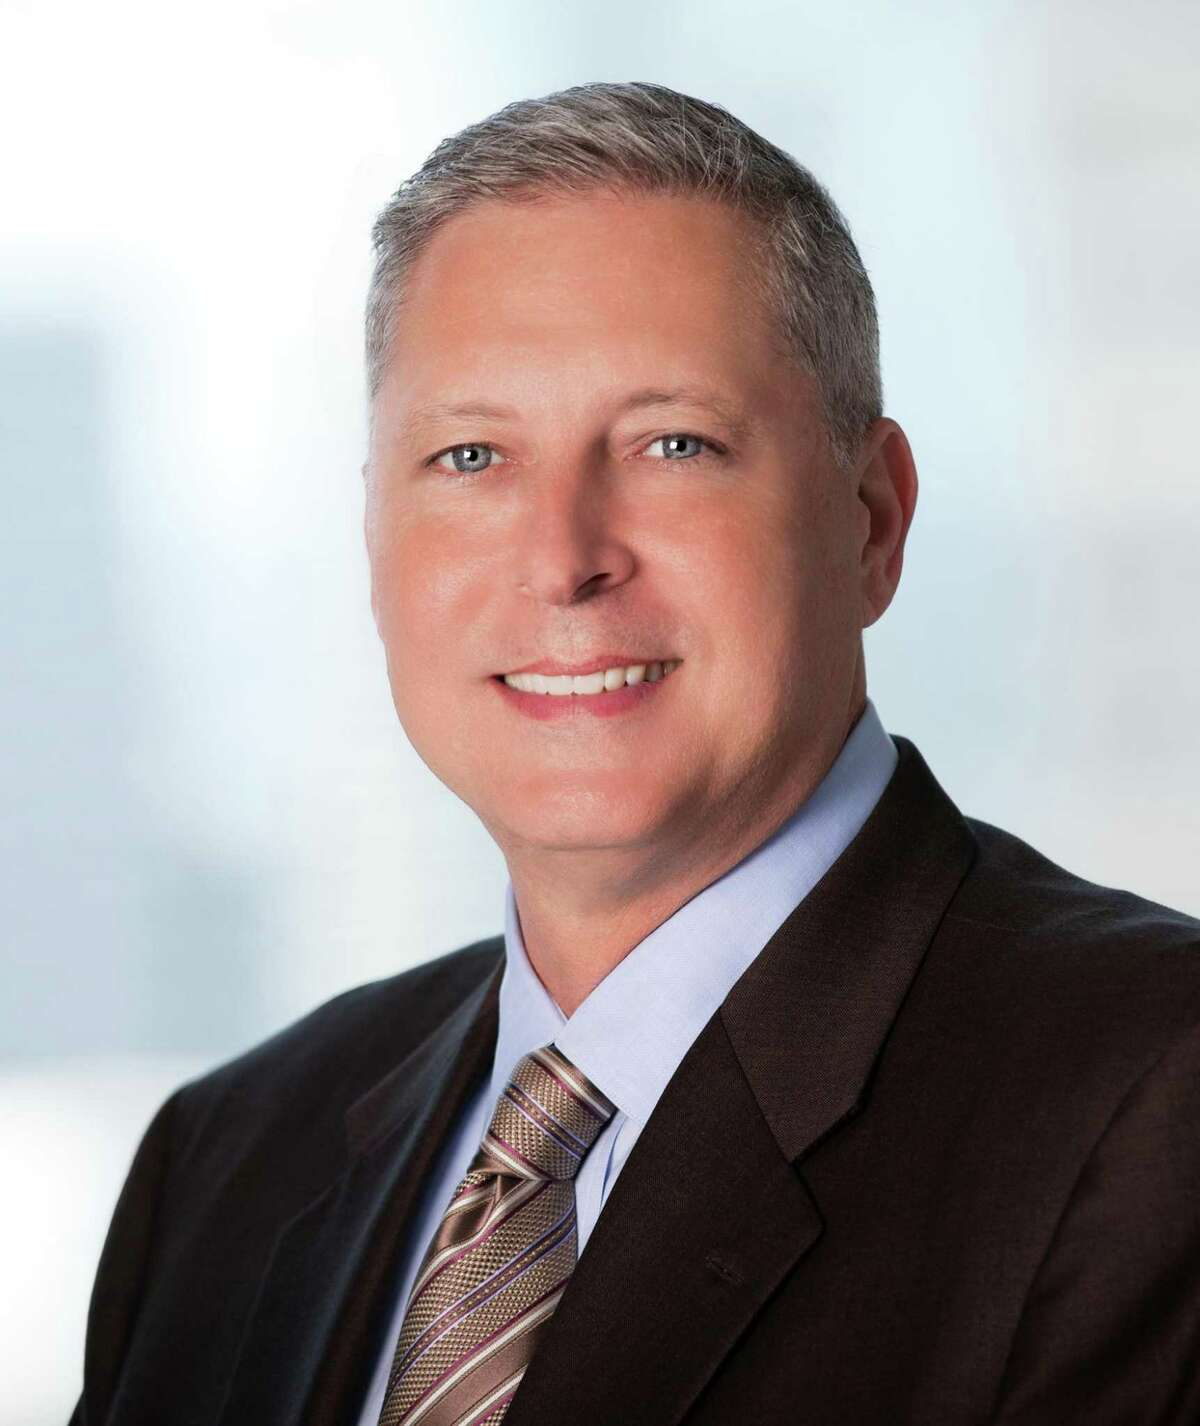 Shawn Lafferty is the Advisory market leader for the KPMG Houston office.